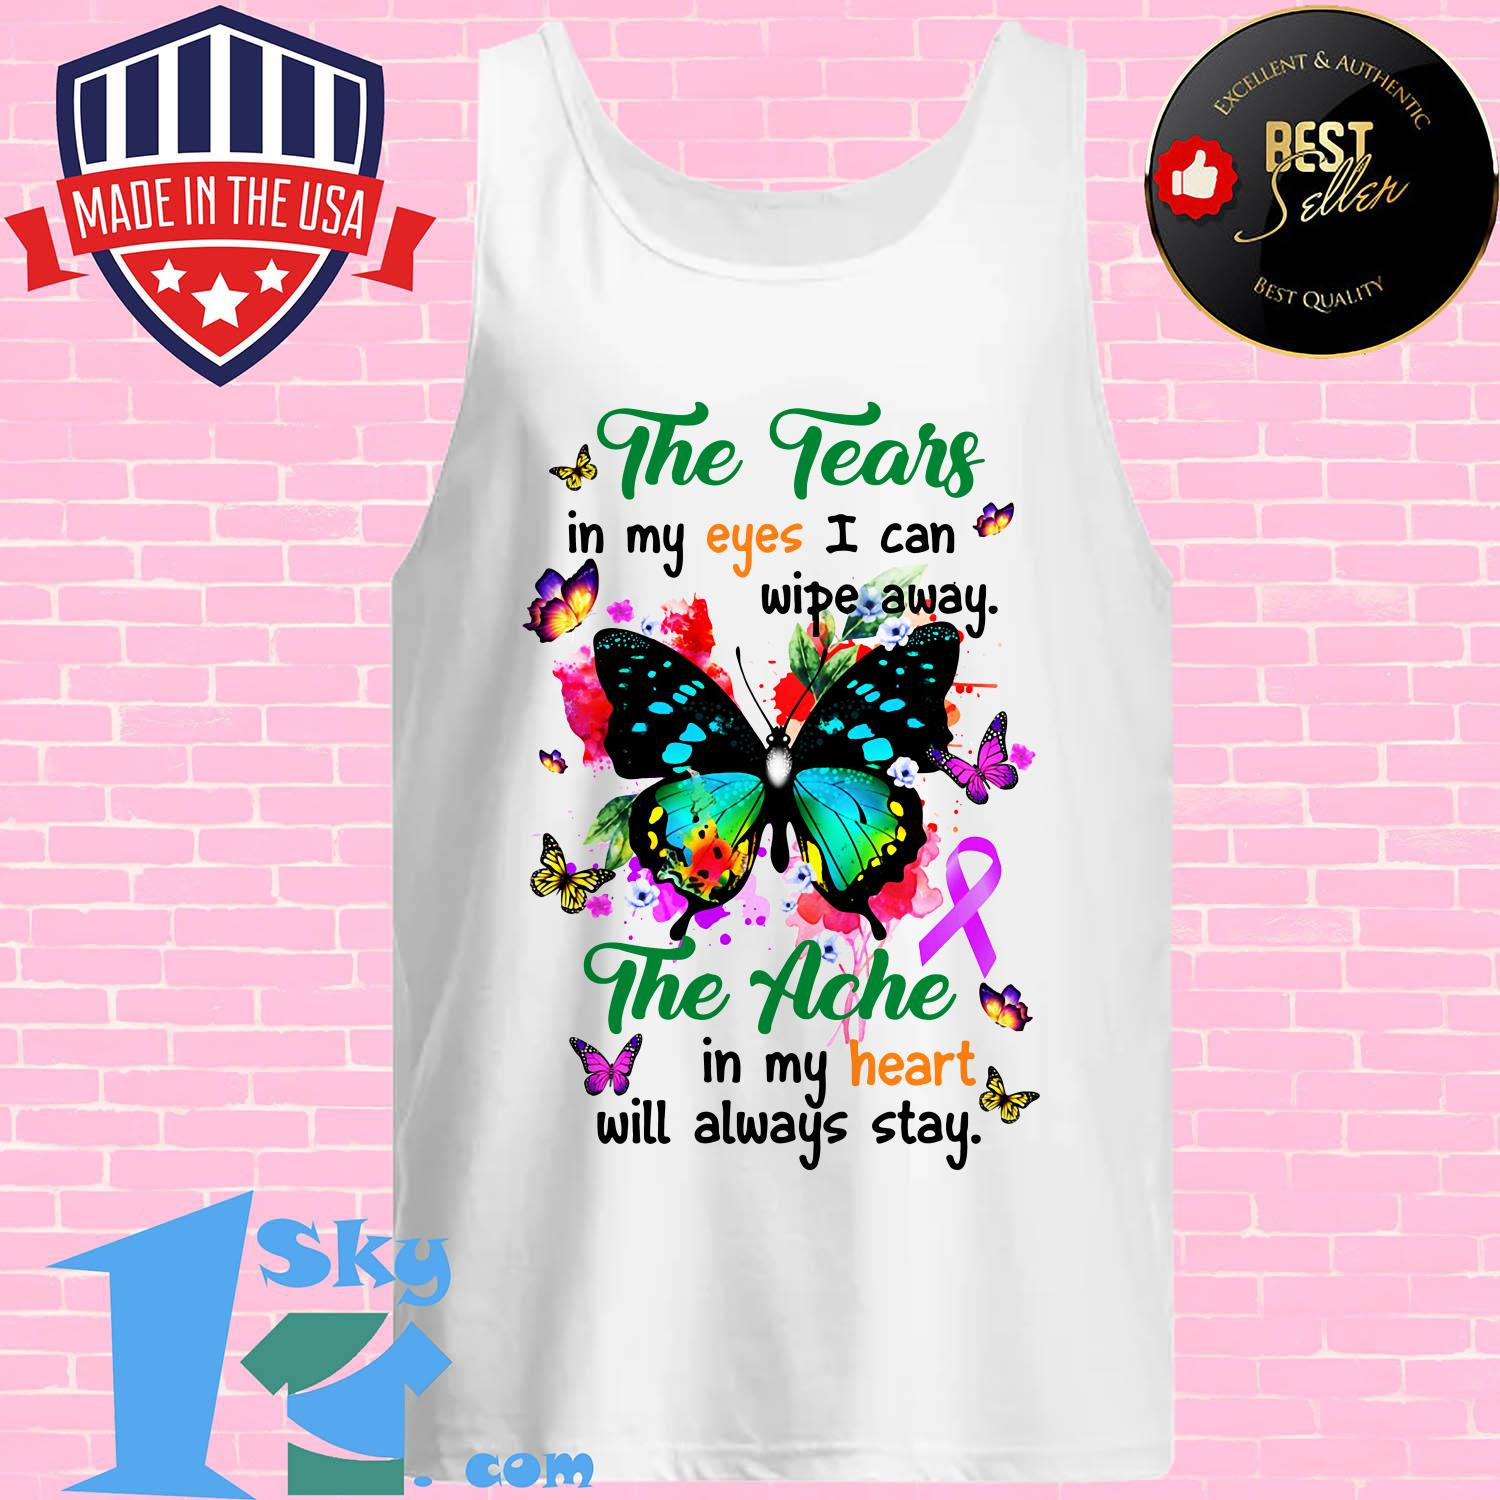 the tears in my eyes i can wipe away the ache in my heart will always butterfly stay tank top - The tears in my eyes I can wipe away the ache in my heart will always butterfly stay shirt